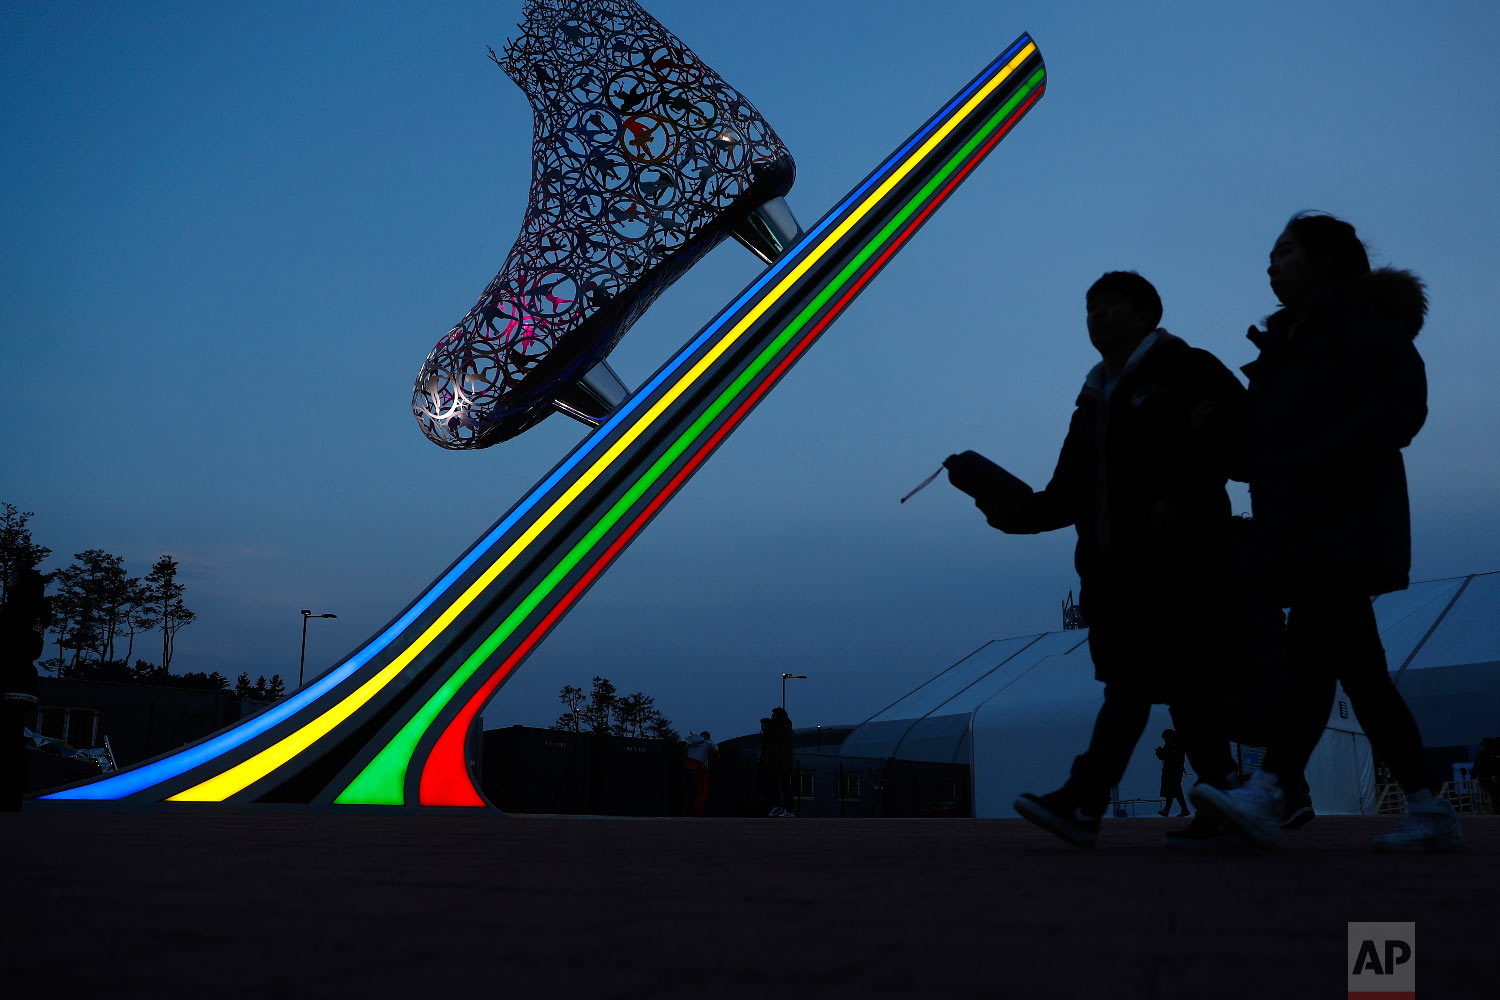 Spectators arrive for the women's 1,000 meters speedskating race at the Gangneung Oval at the 2018 Winter Olympics in Gangneung, South Korea, Wednesday, Feb. 14, 2018. (AP Photo/John Locher)